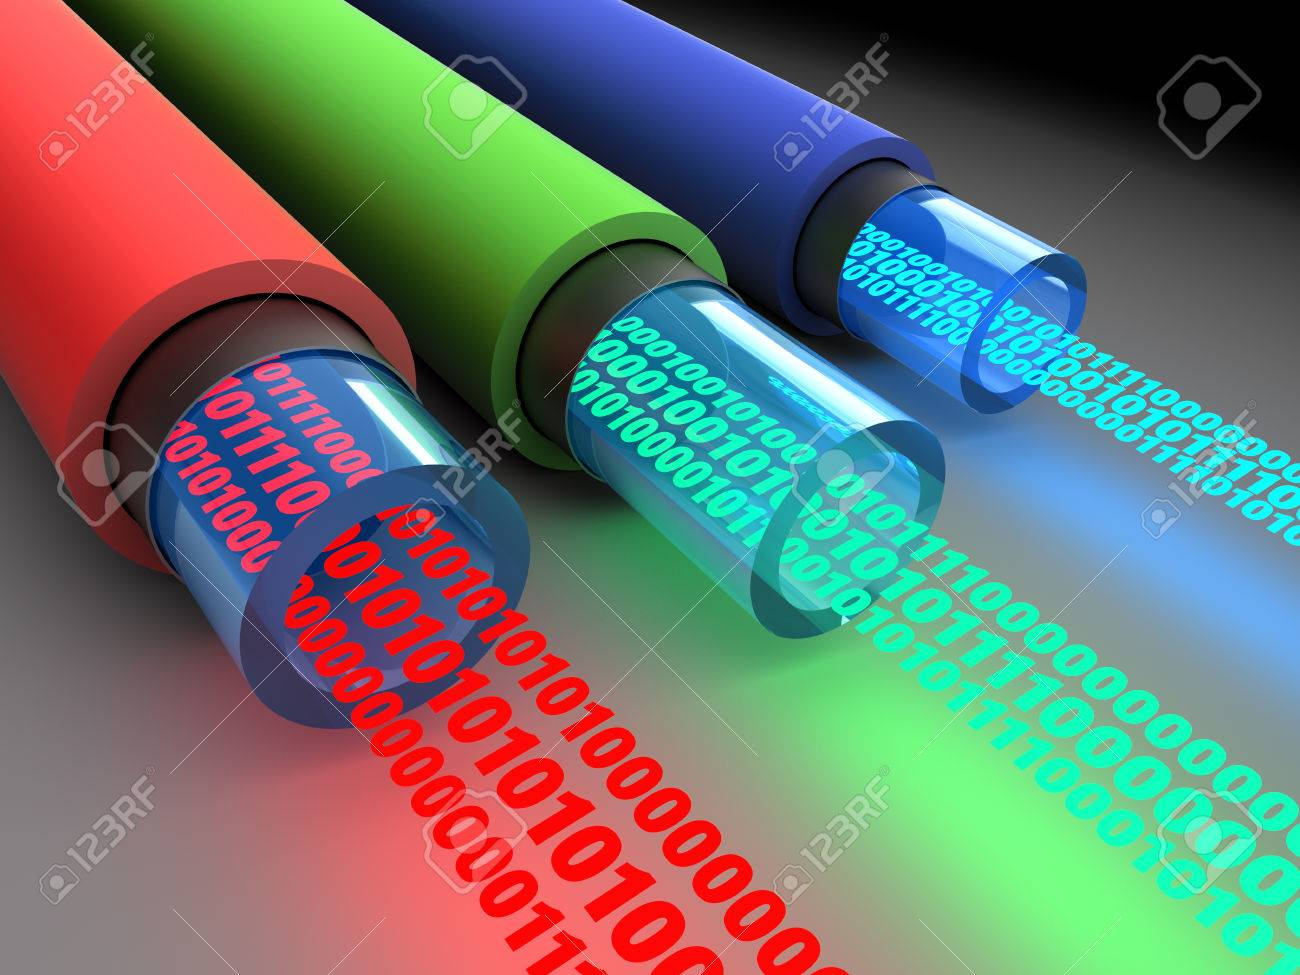 3d illustration of fiber optics cables with binary data - 61545167